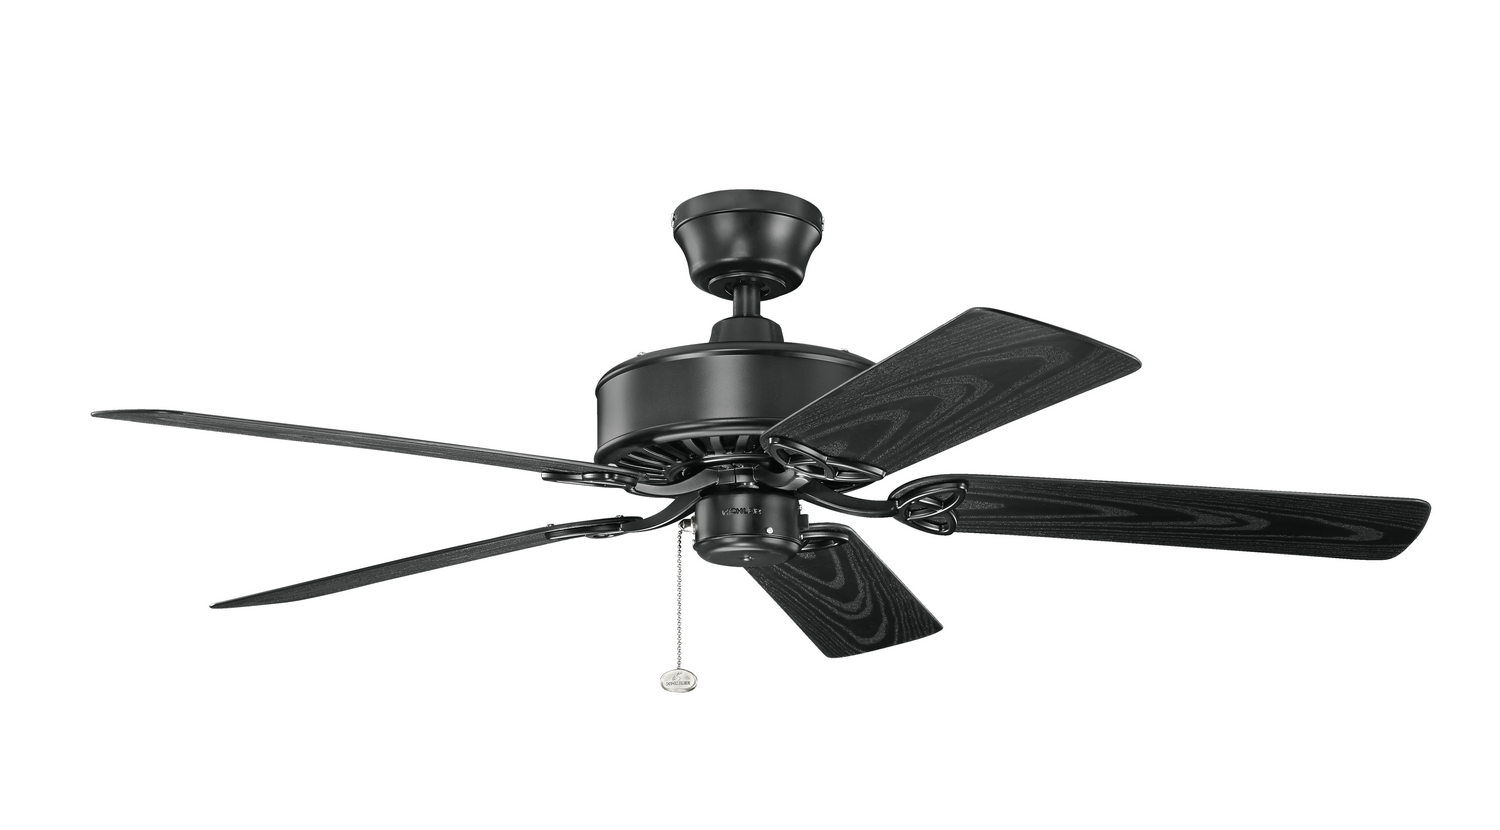 52 inchCeiling Fan from the Renew Patio collection by Kichler 339515SBK